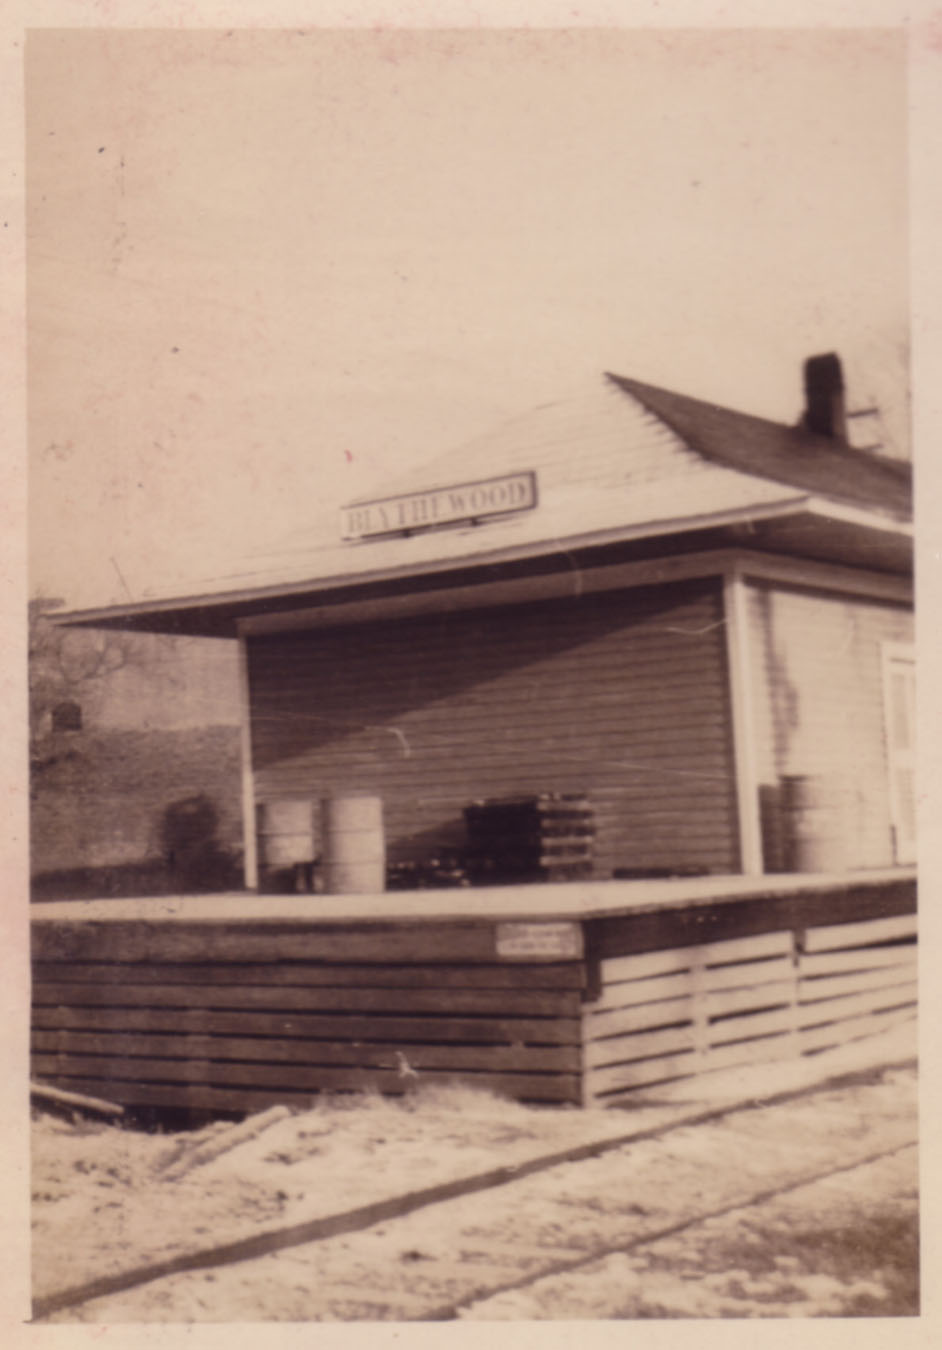 South end of depot.  Photo by Hudnalle McLean Sr.  Note platform and fire barrel.